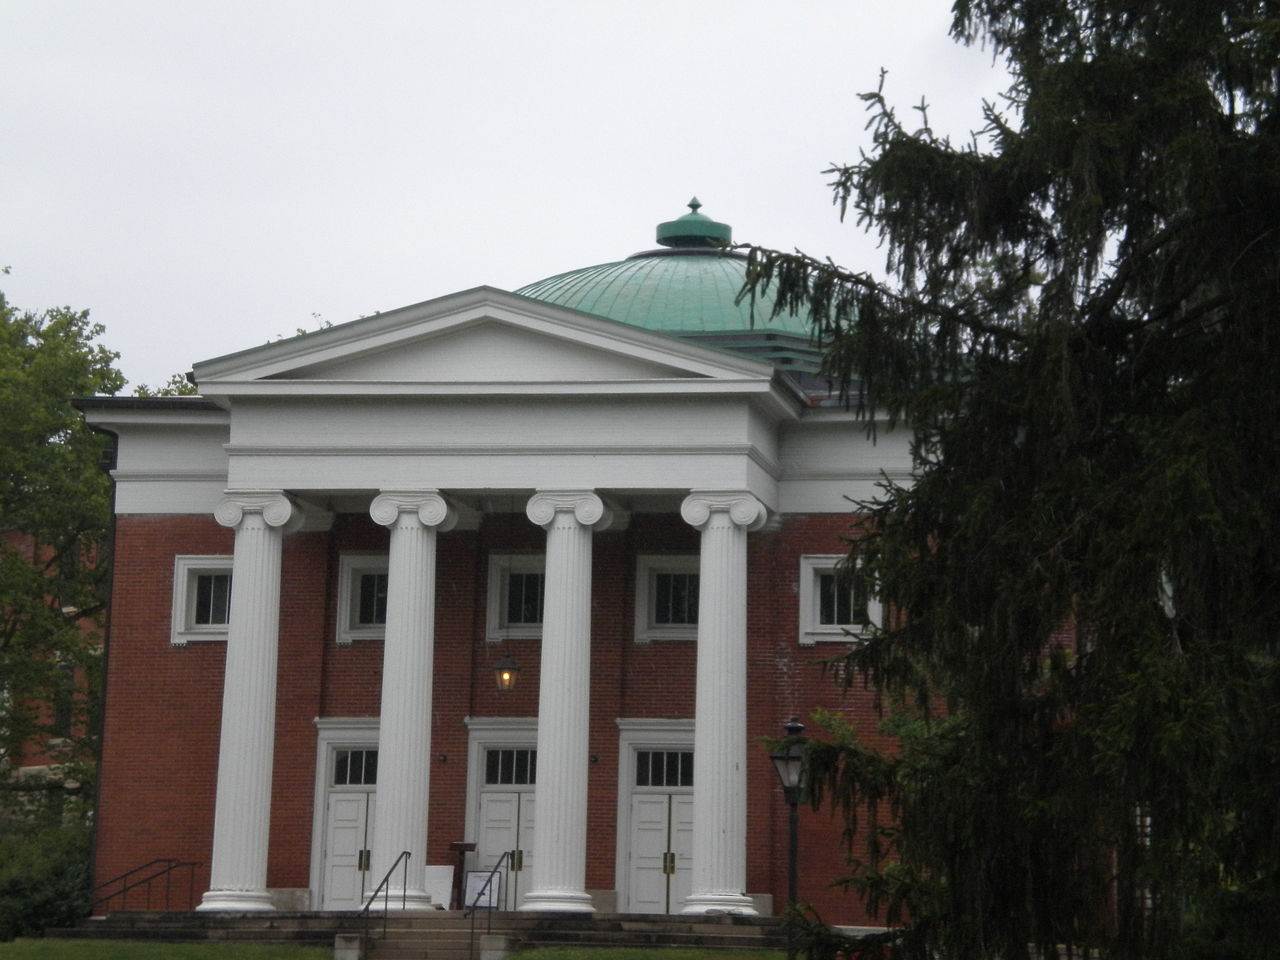 Ridges Auditorium at Ohio University - Courtesy OhioOat via Wikimedia Commons